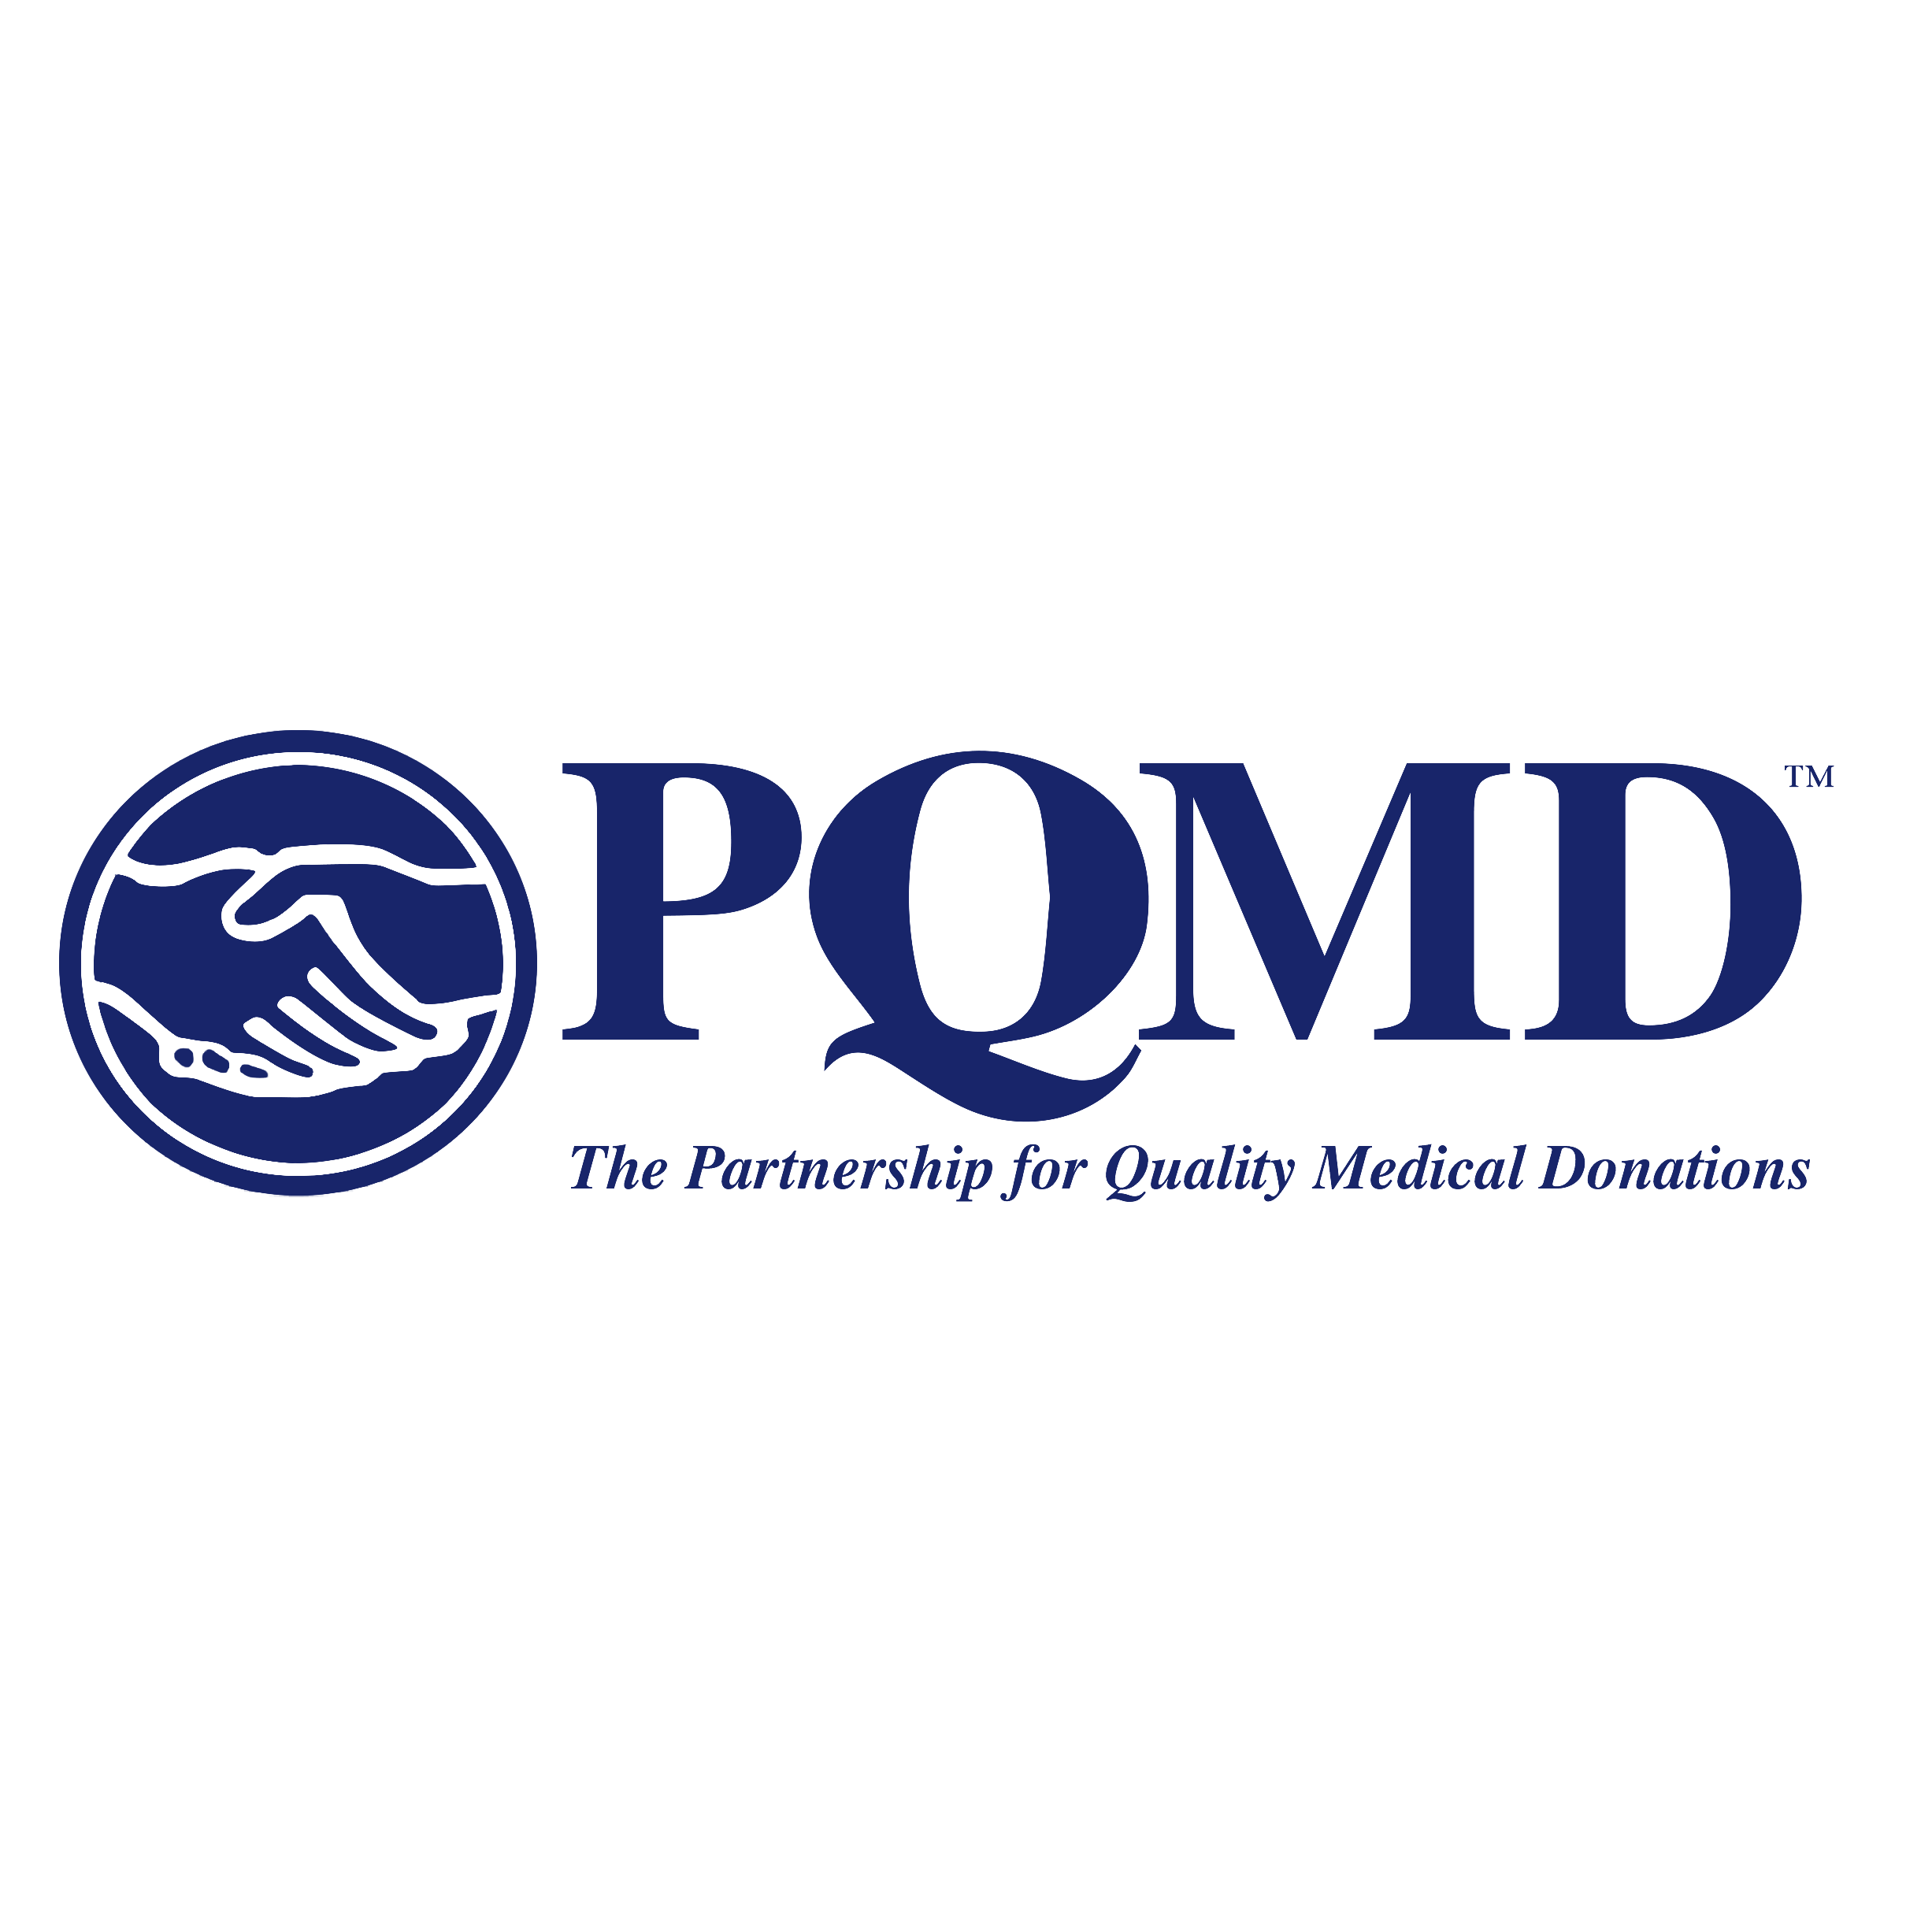 Partnership for Quality Medical Donations